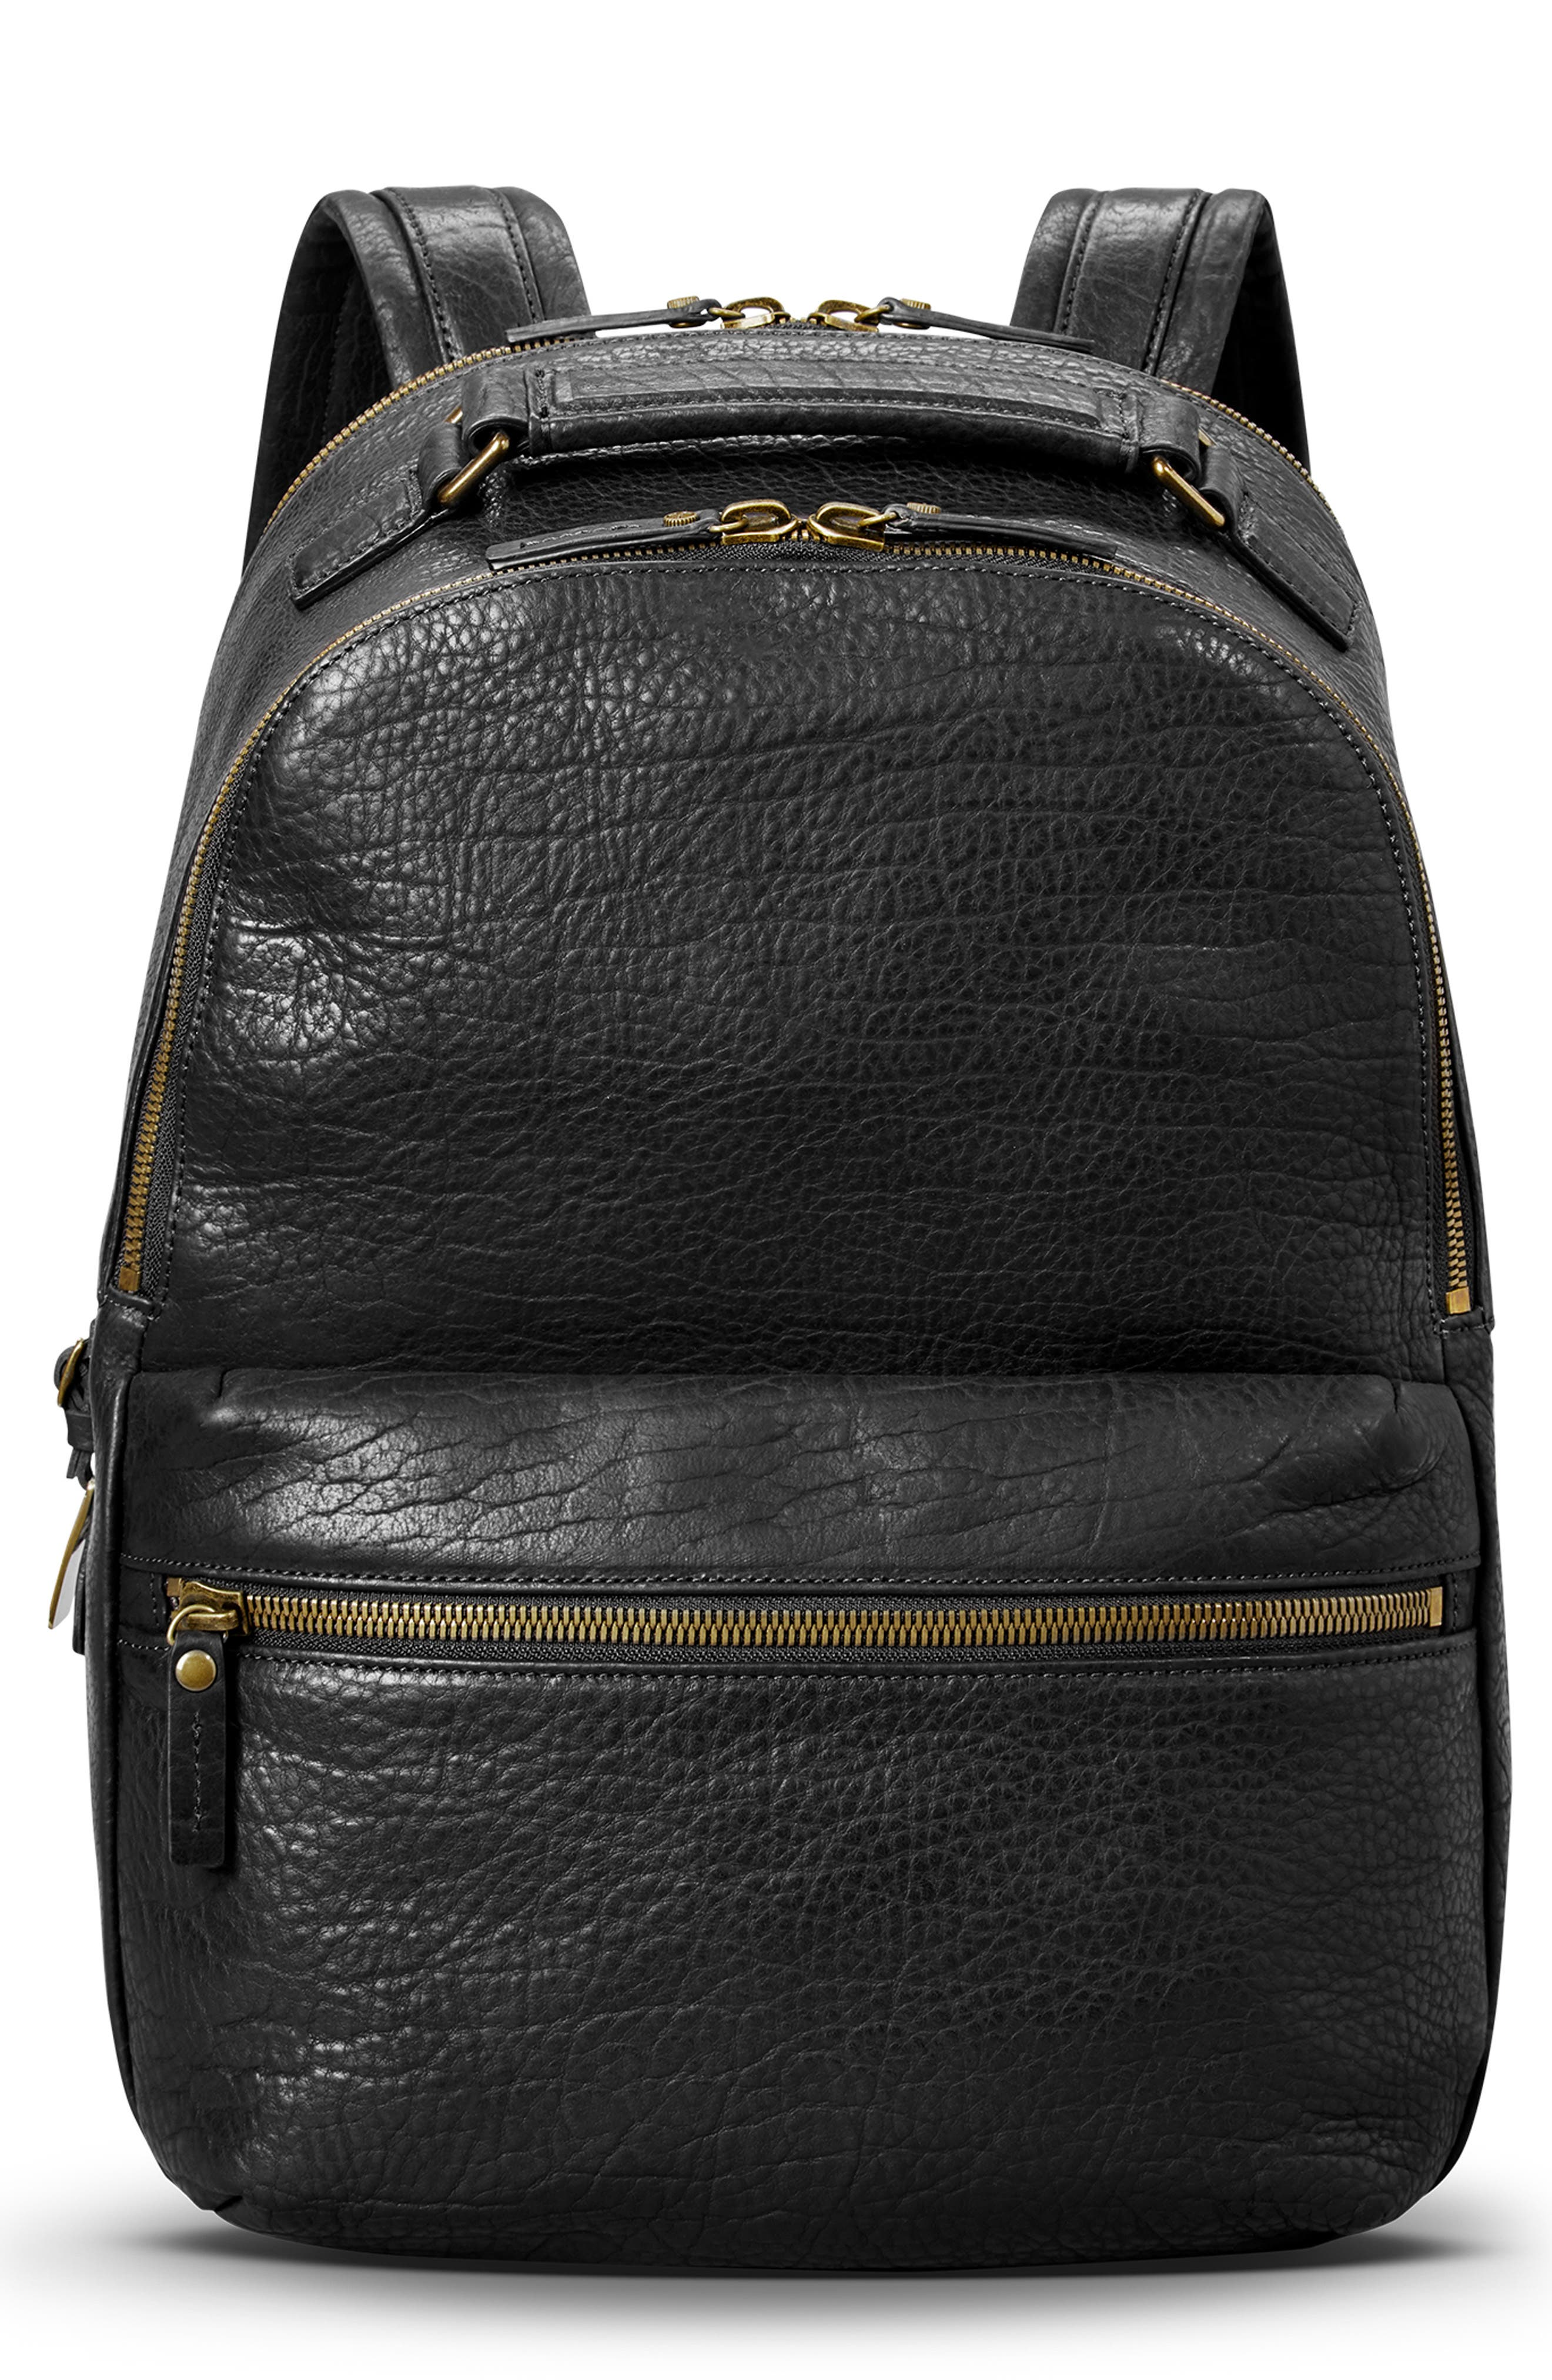 Bison Runwell Leather Backpack,                             Main thumbnail 1, color,                             BLACK